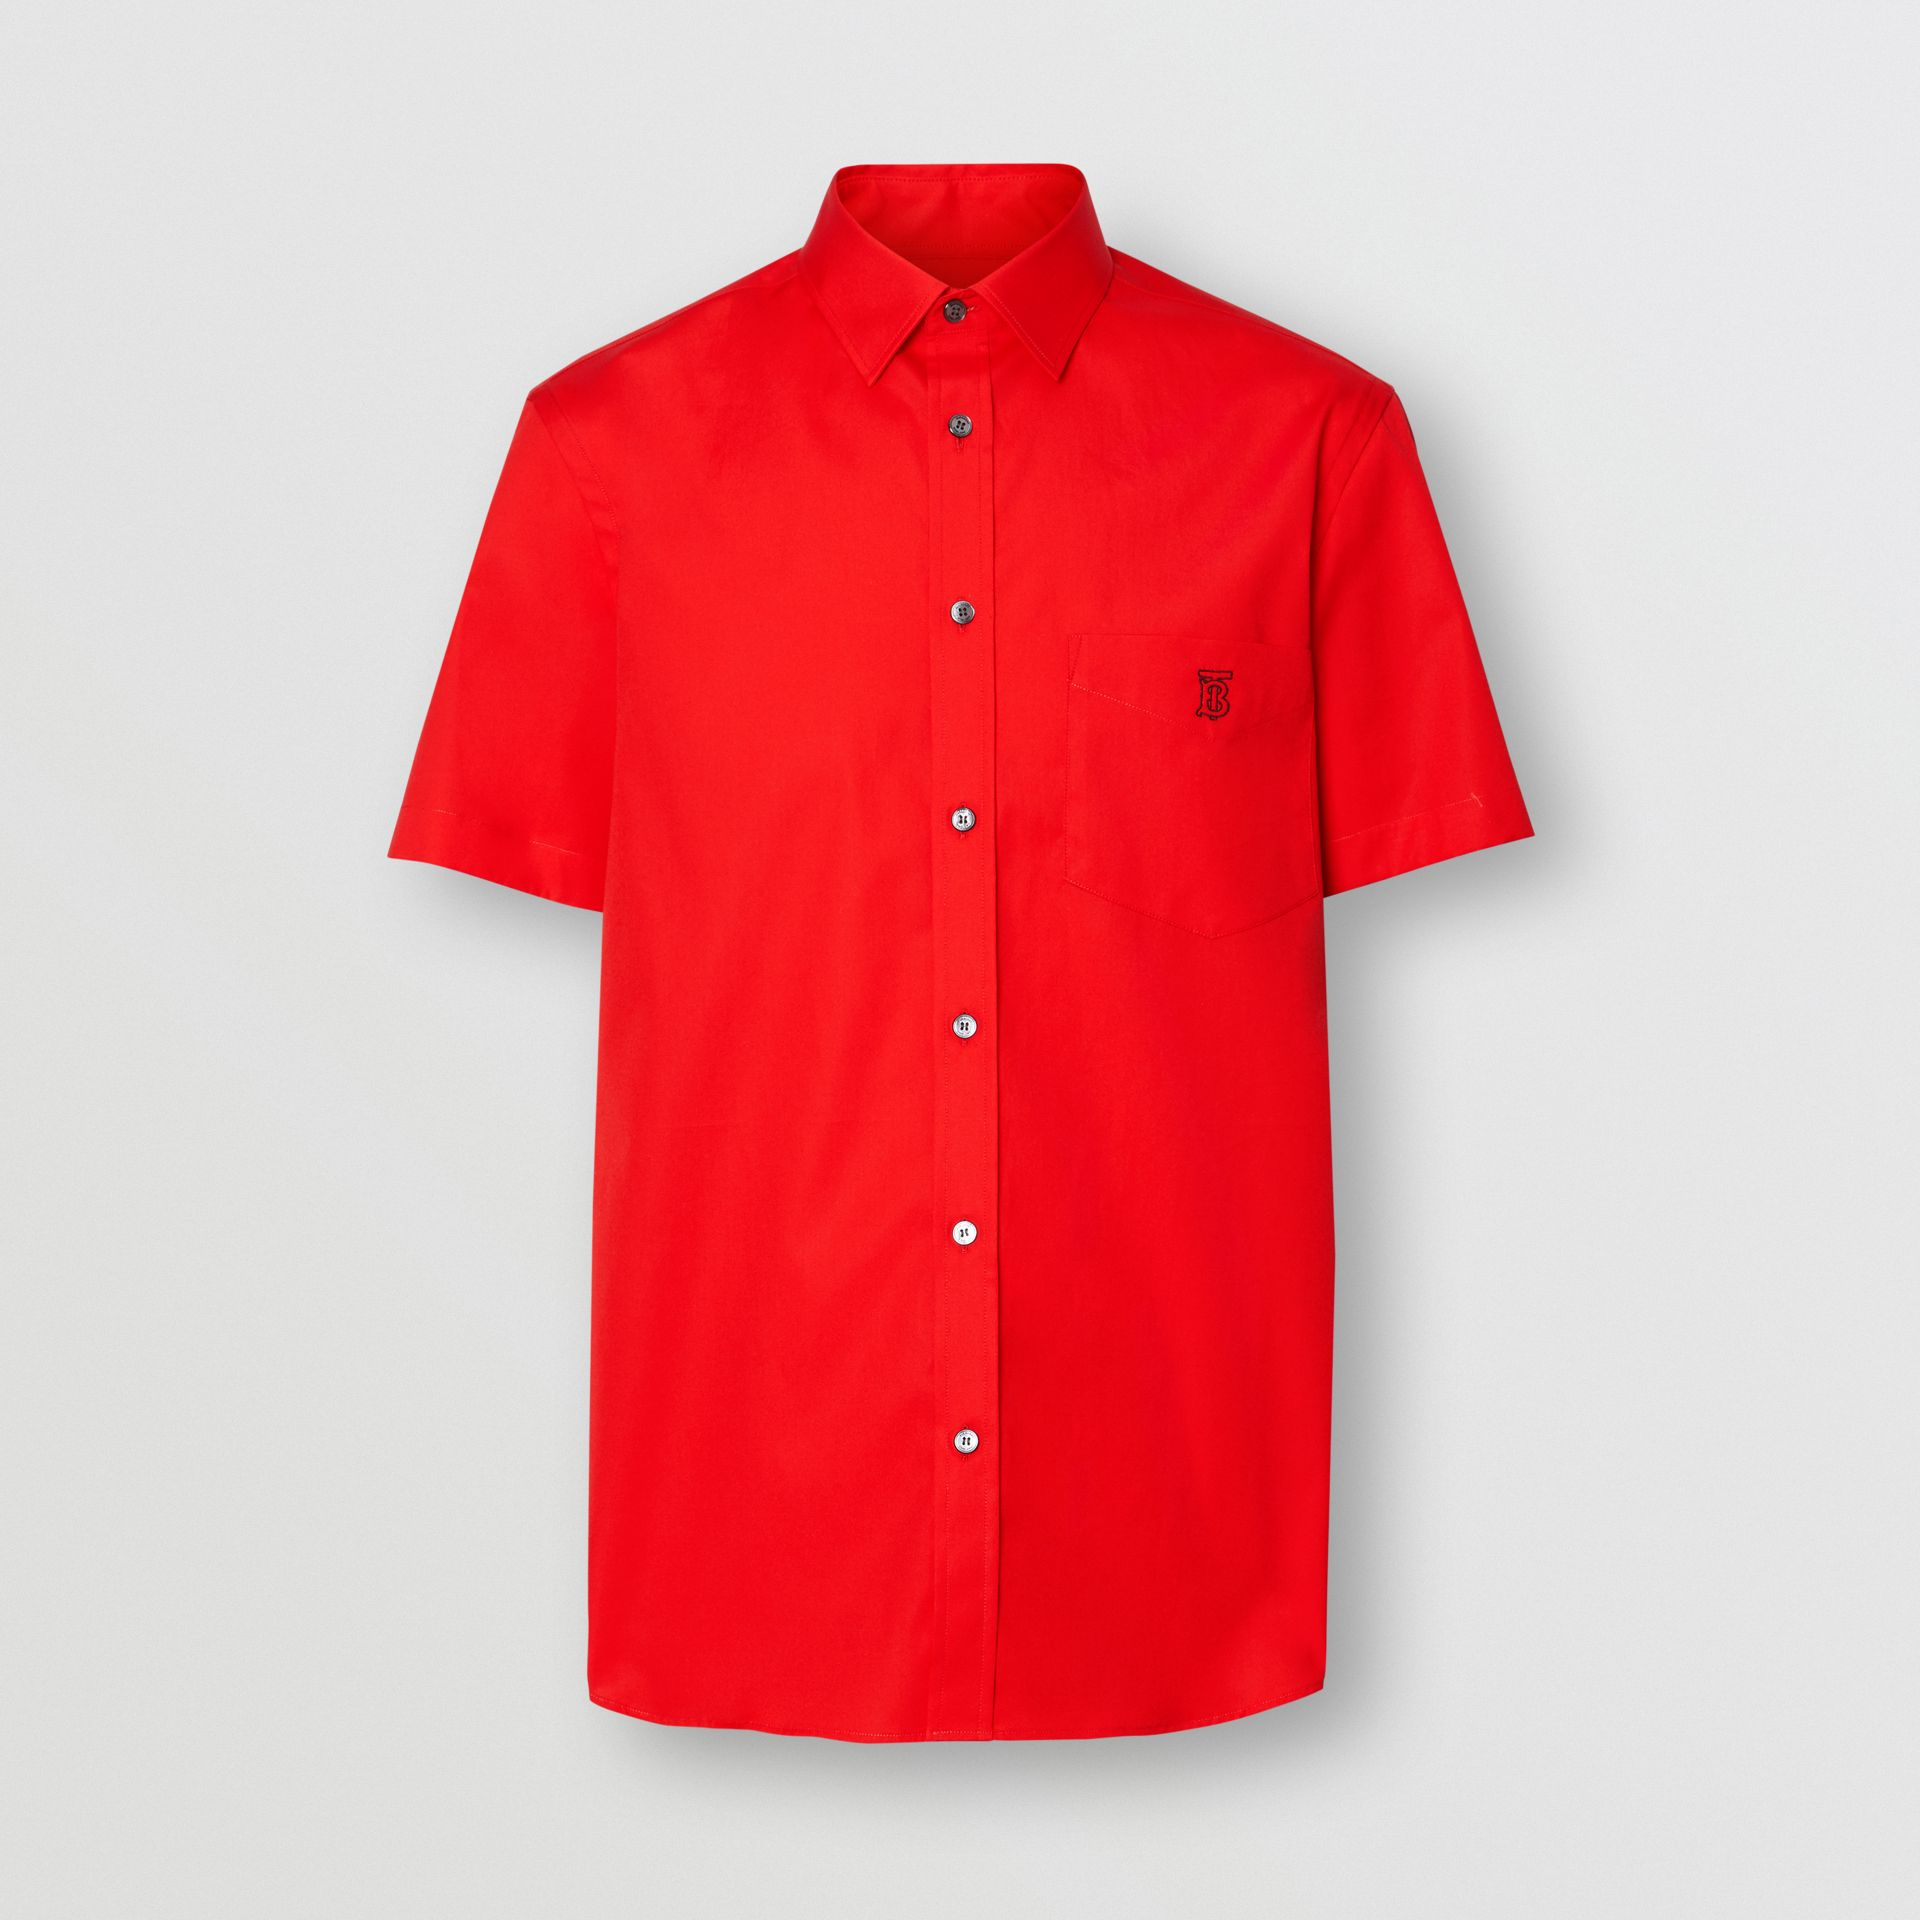 Short-sleeve Monogram Motif Stretch Cotton Shirt in Bright Red - Men | Burberry - gallery image 3